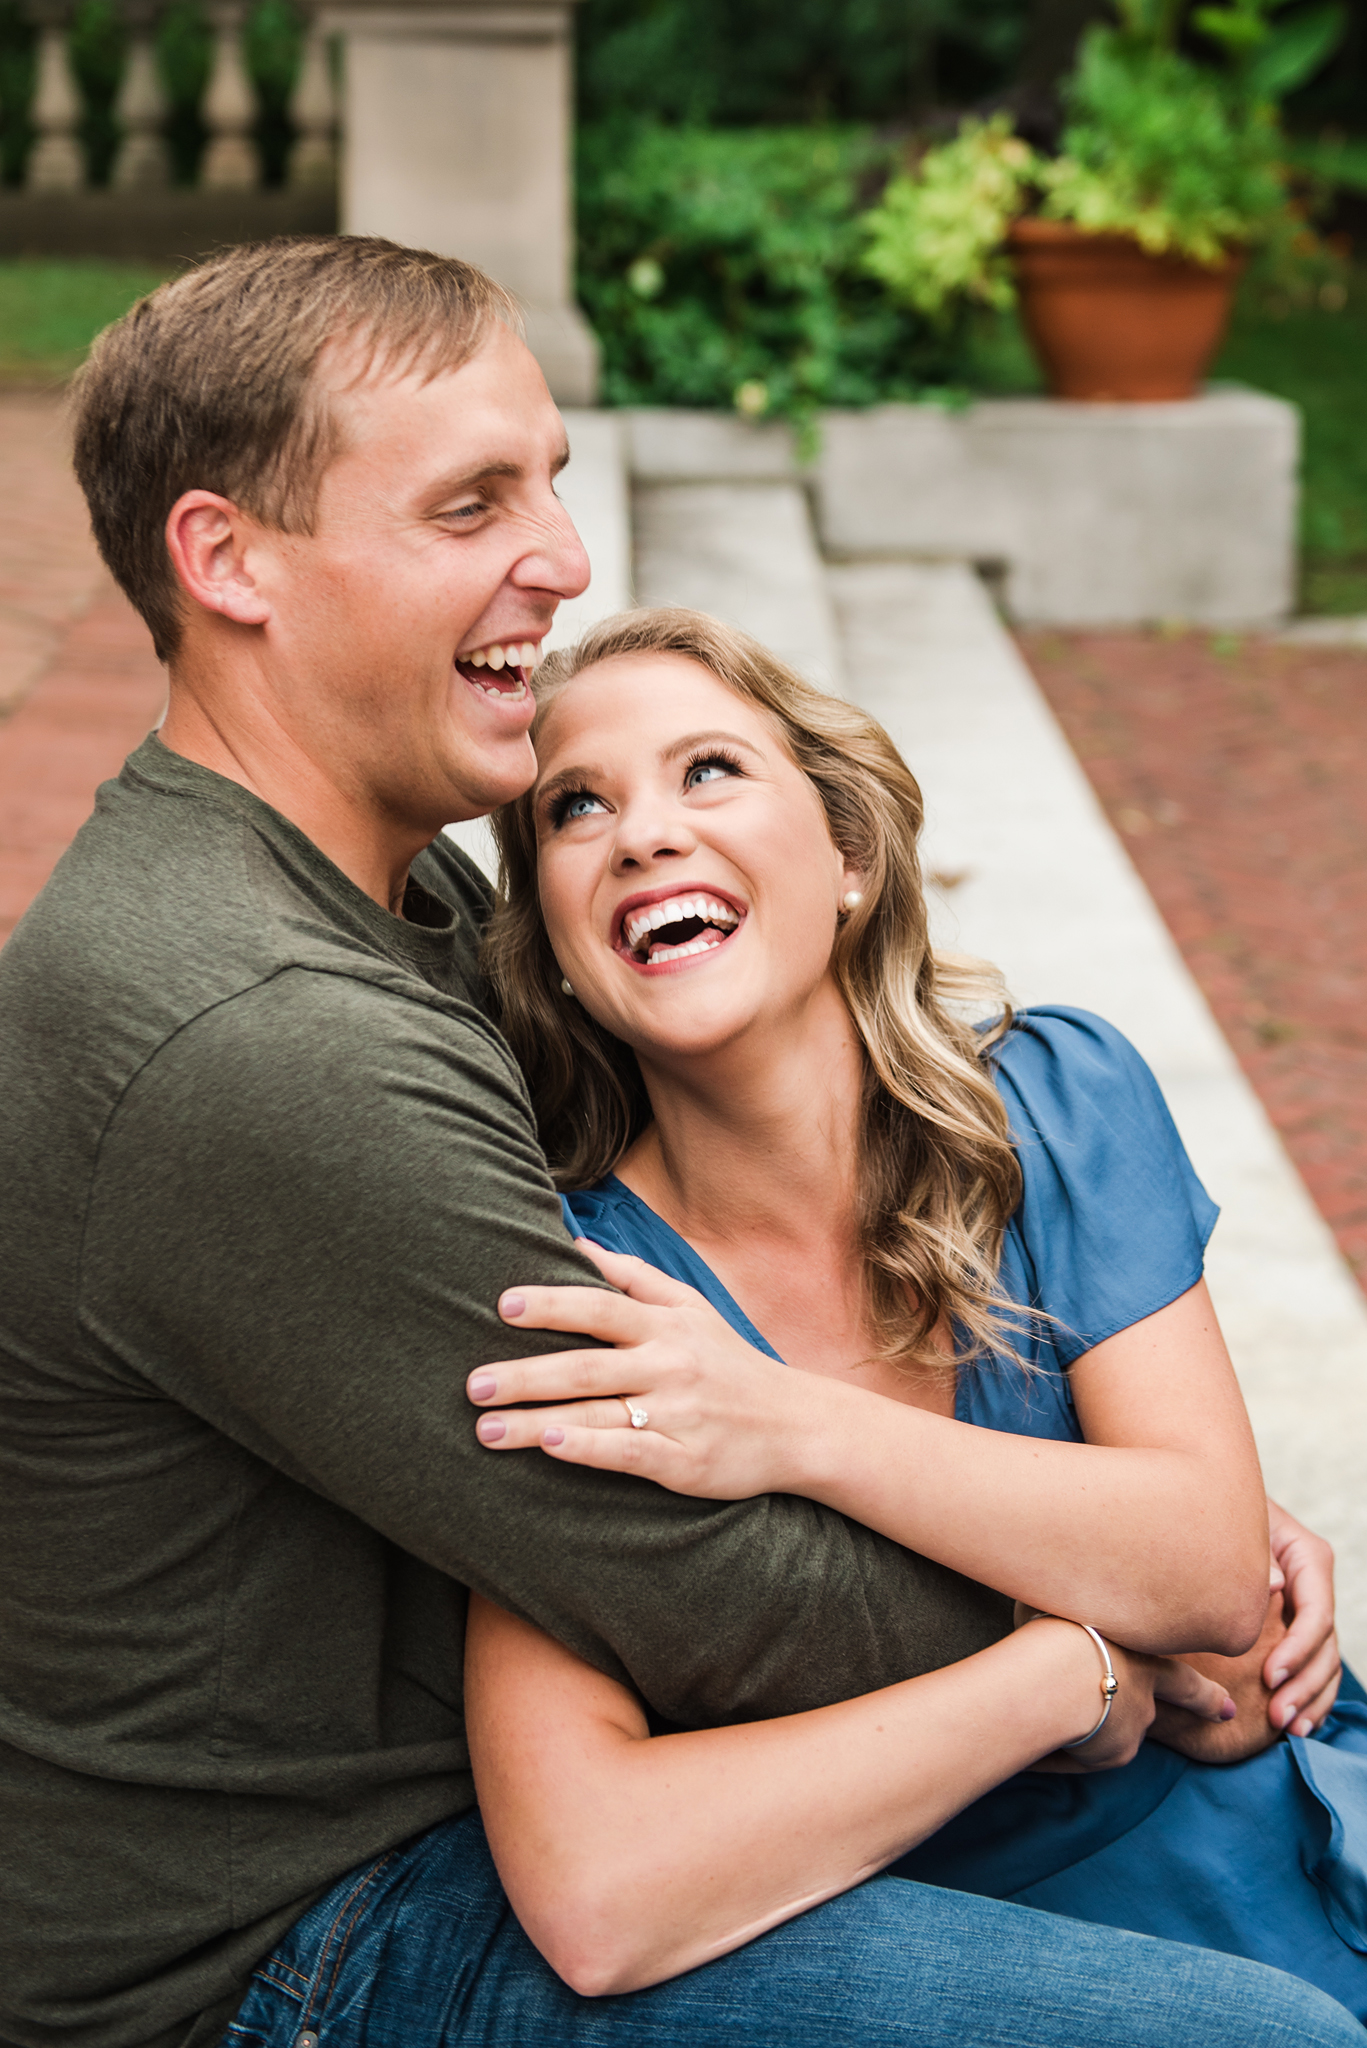 George_Eastman_House_Rochester_Yacht_Club_Rochester_Engagement_Session_JILL_STUDIO_Rochester_NY_Photographer_DSC_8040.jpg